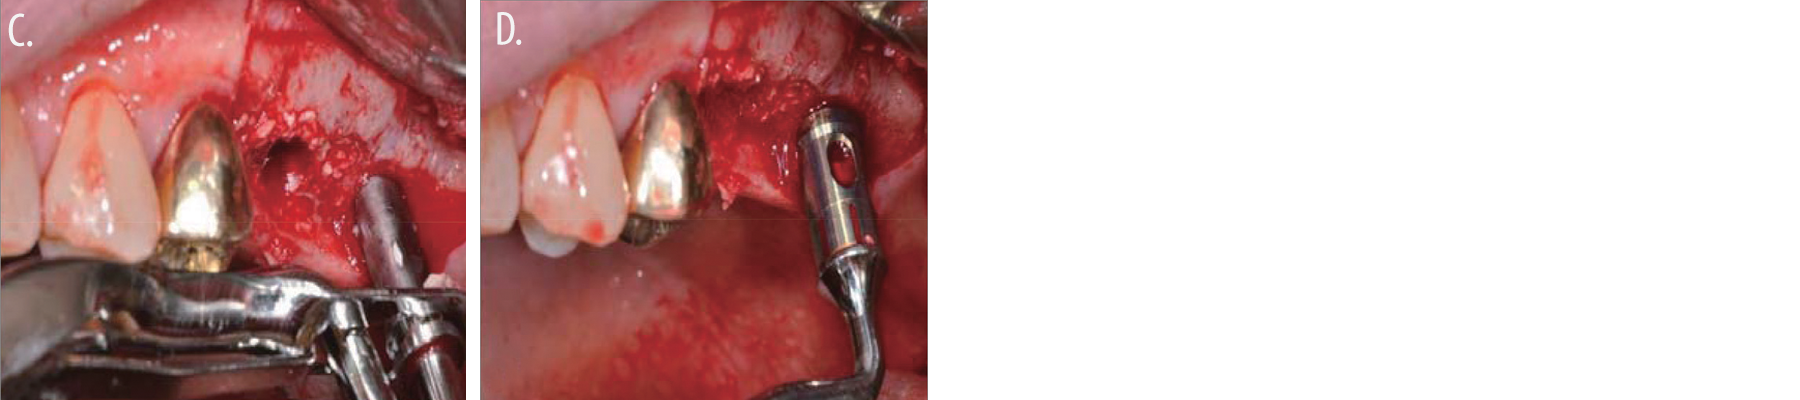 Fig 1. filling the hole with bone graft material using the bone carrier Fig 2. bone condenser with the stopper.